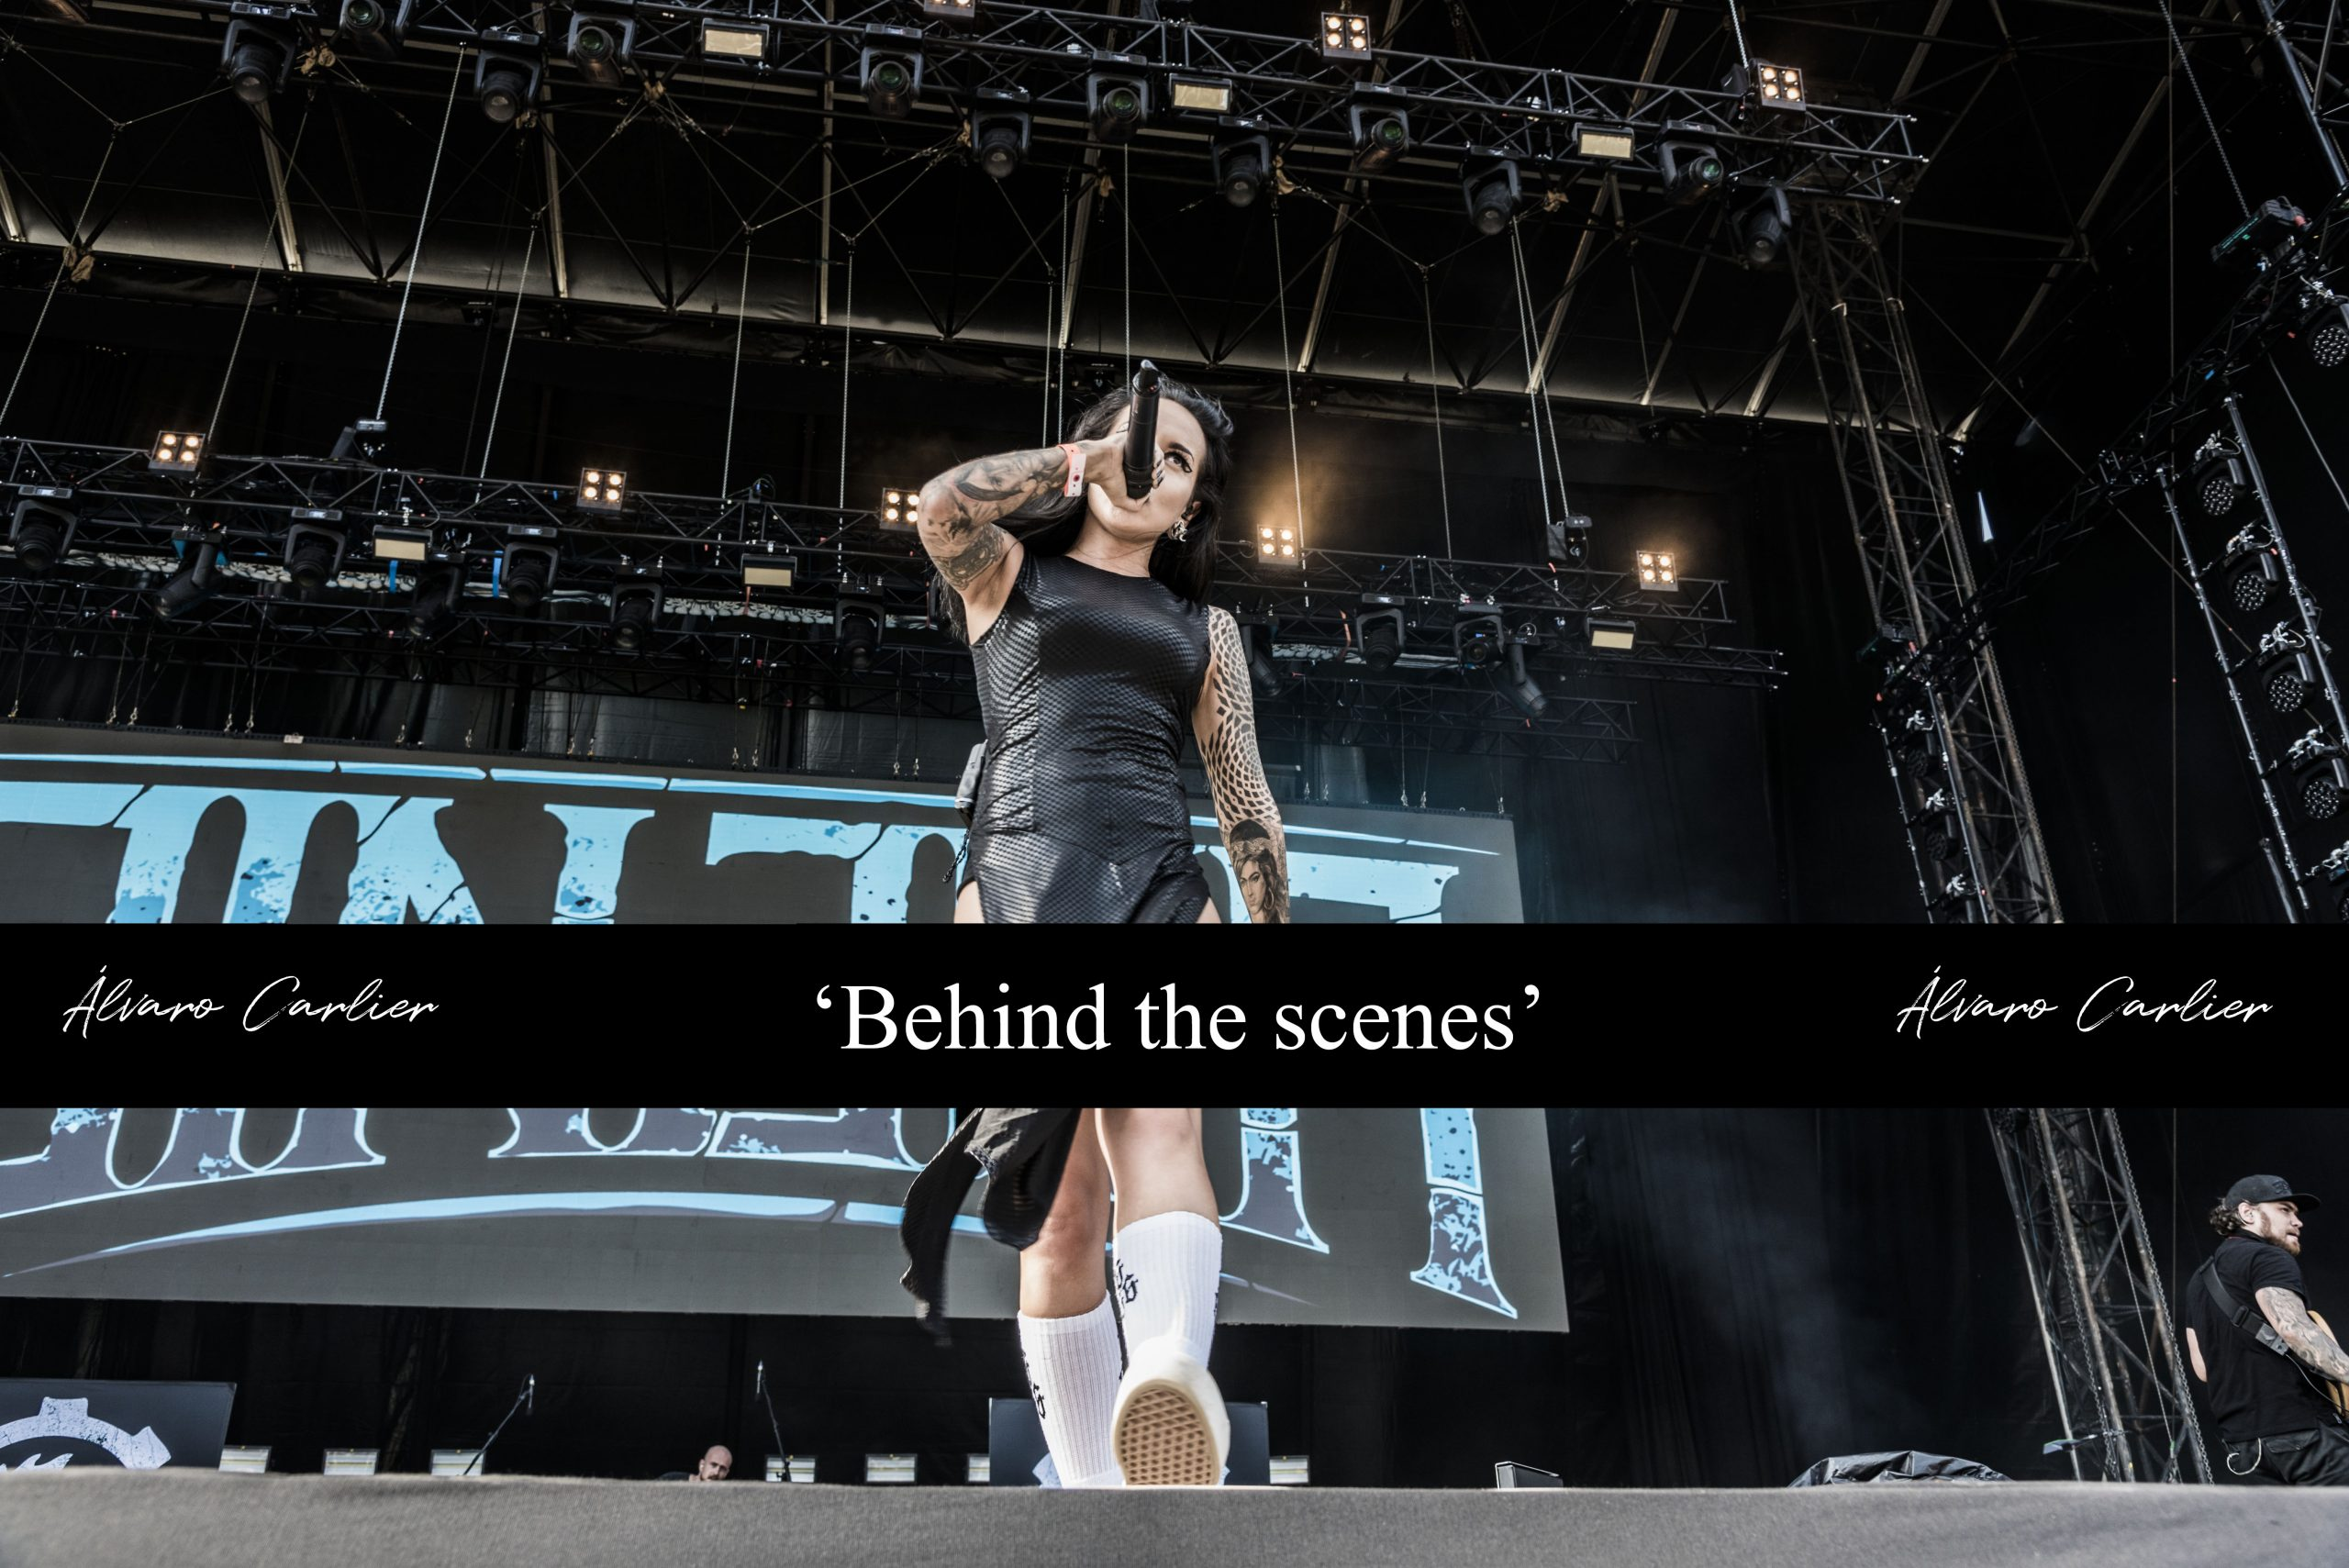 'Behind the scenes'